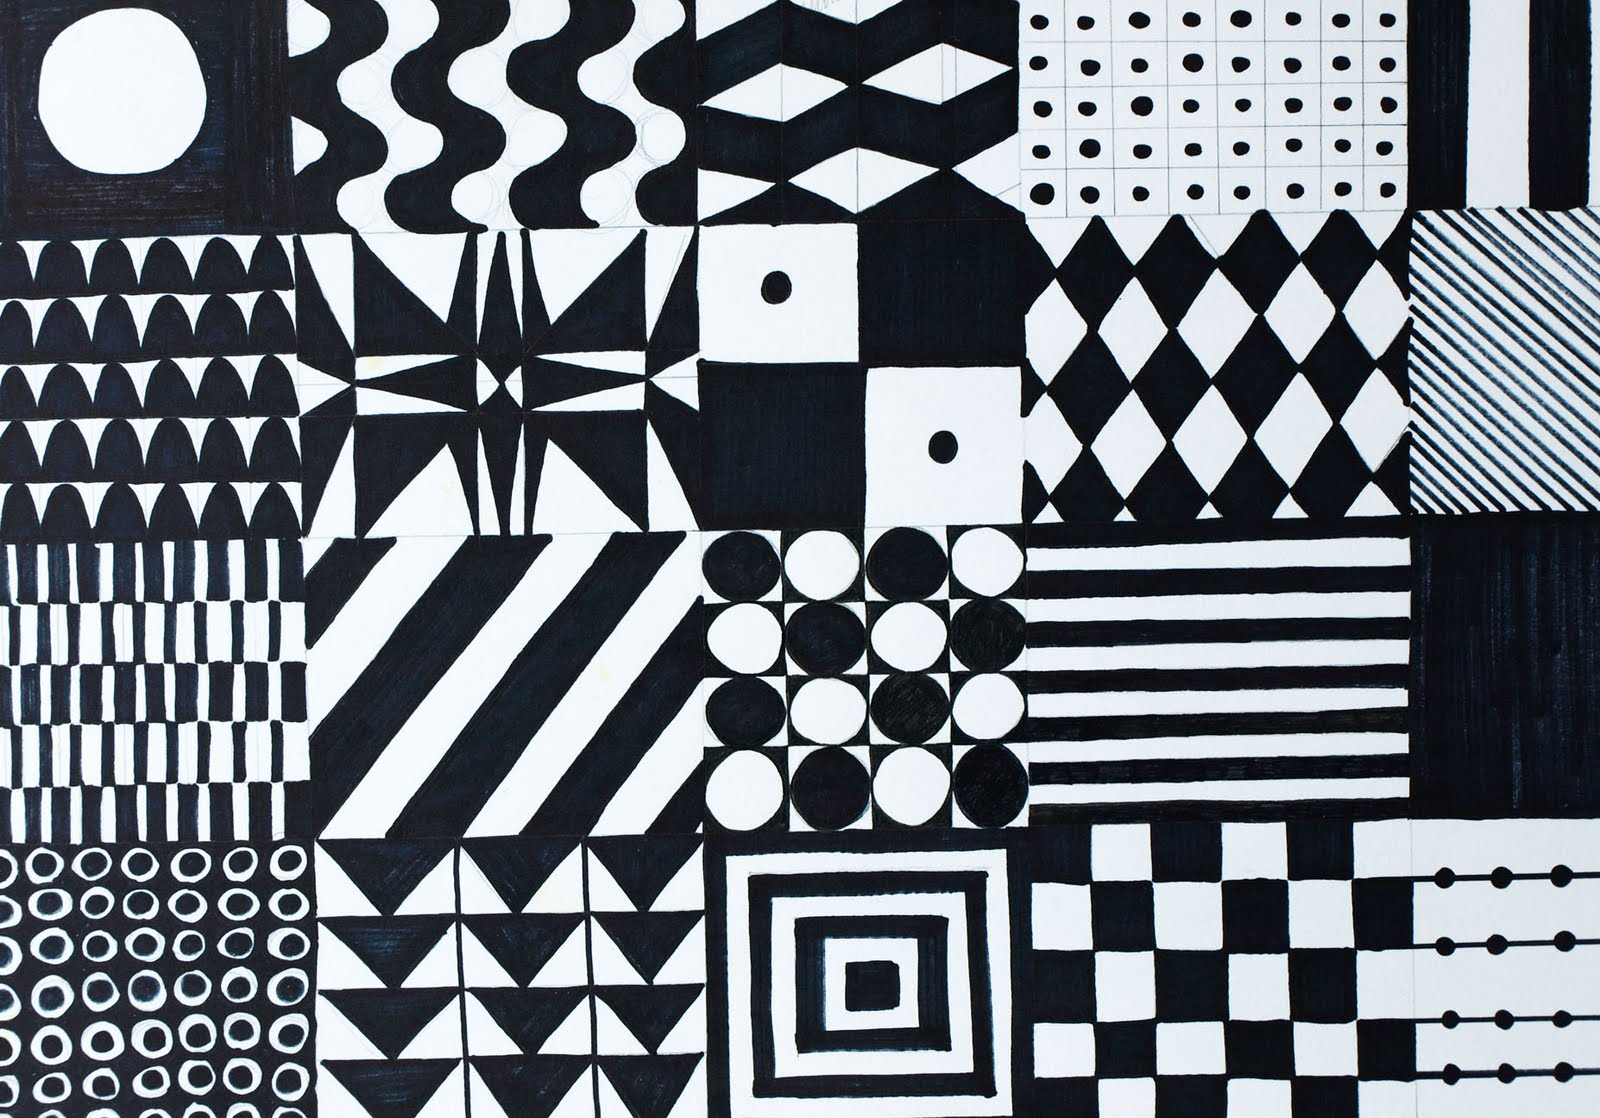 drawings by numbers 71 black and white patterns